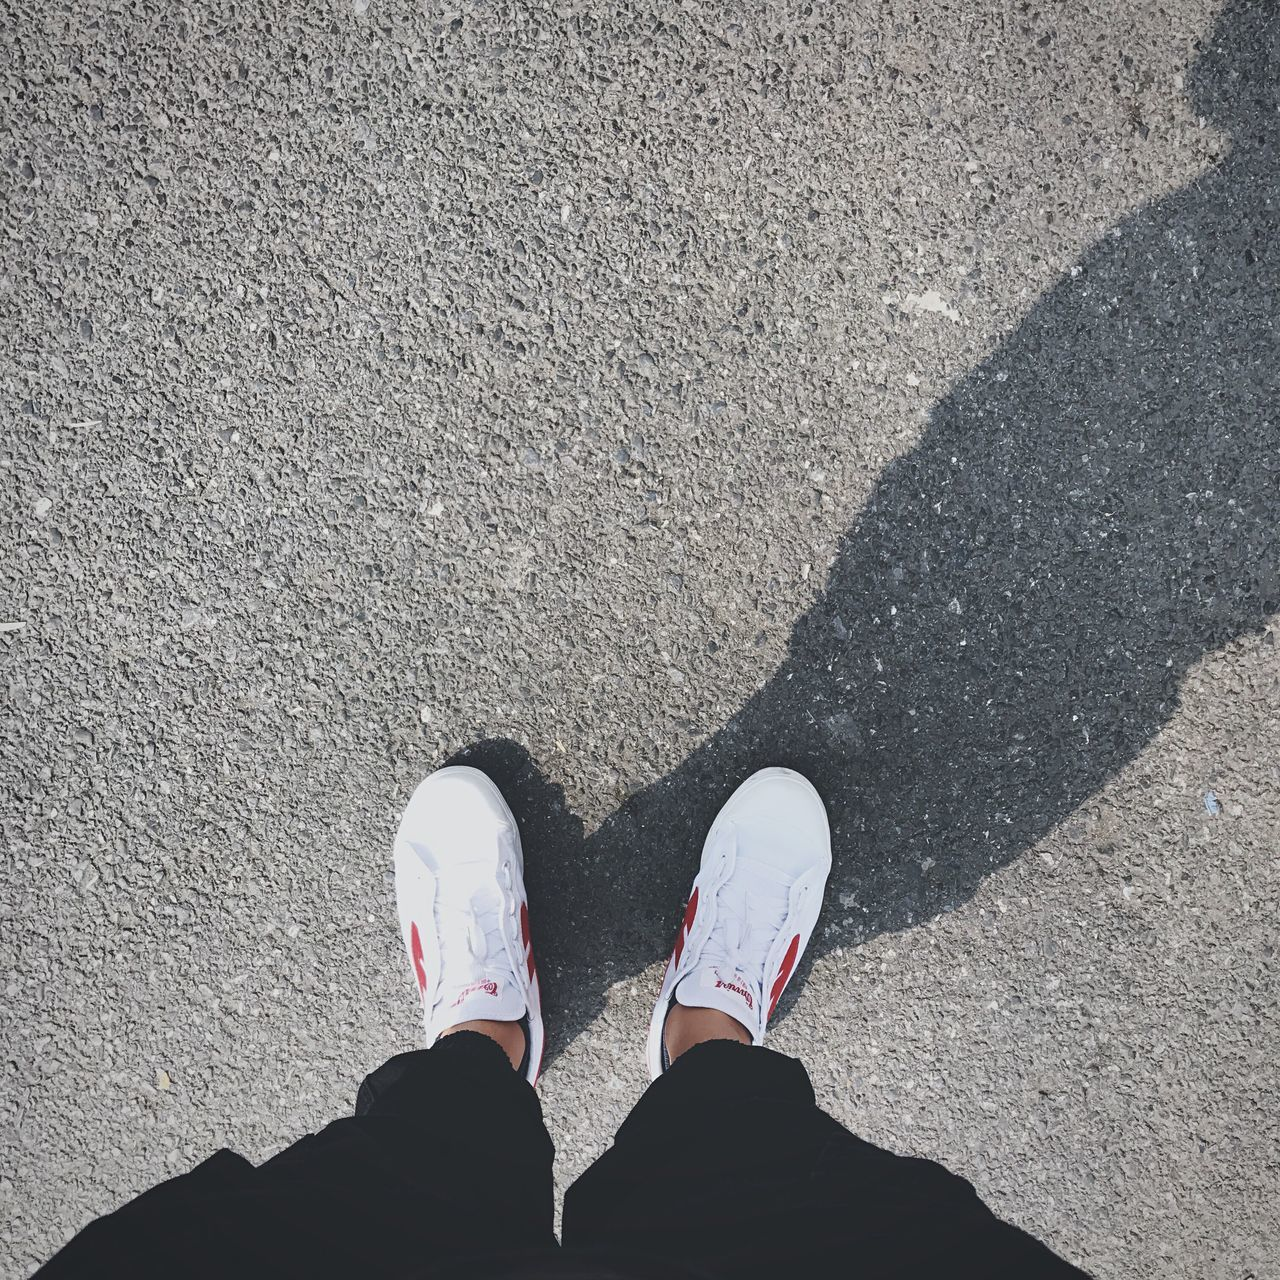 shoe, real people, human leg, low section, one person, standing, high angle view, shadow, personal perspective, men, human body part, lifestyles, day, sunlight, outdoors, people